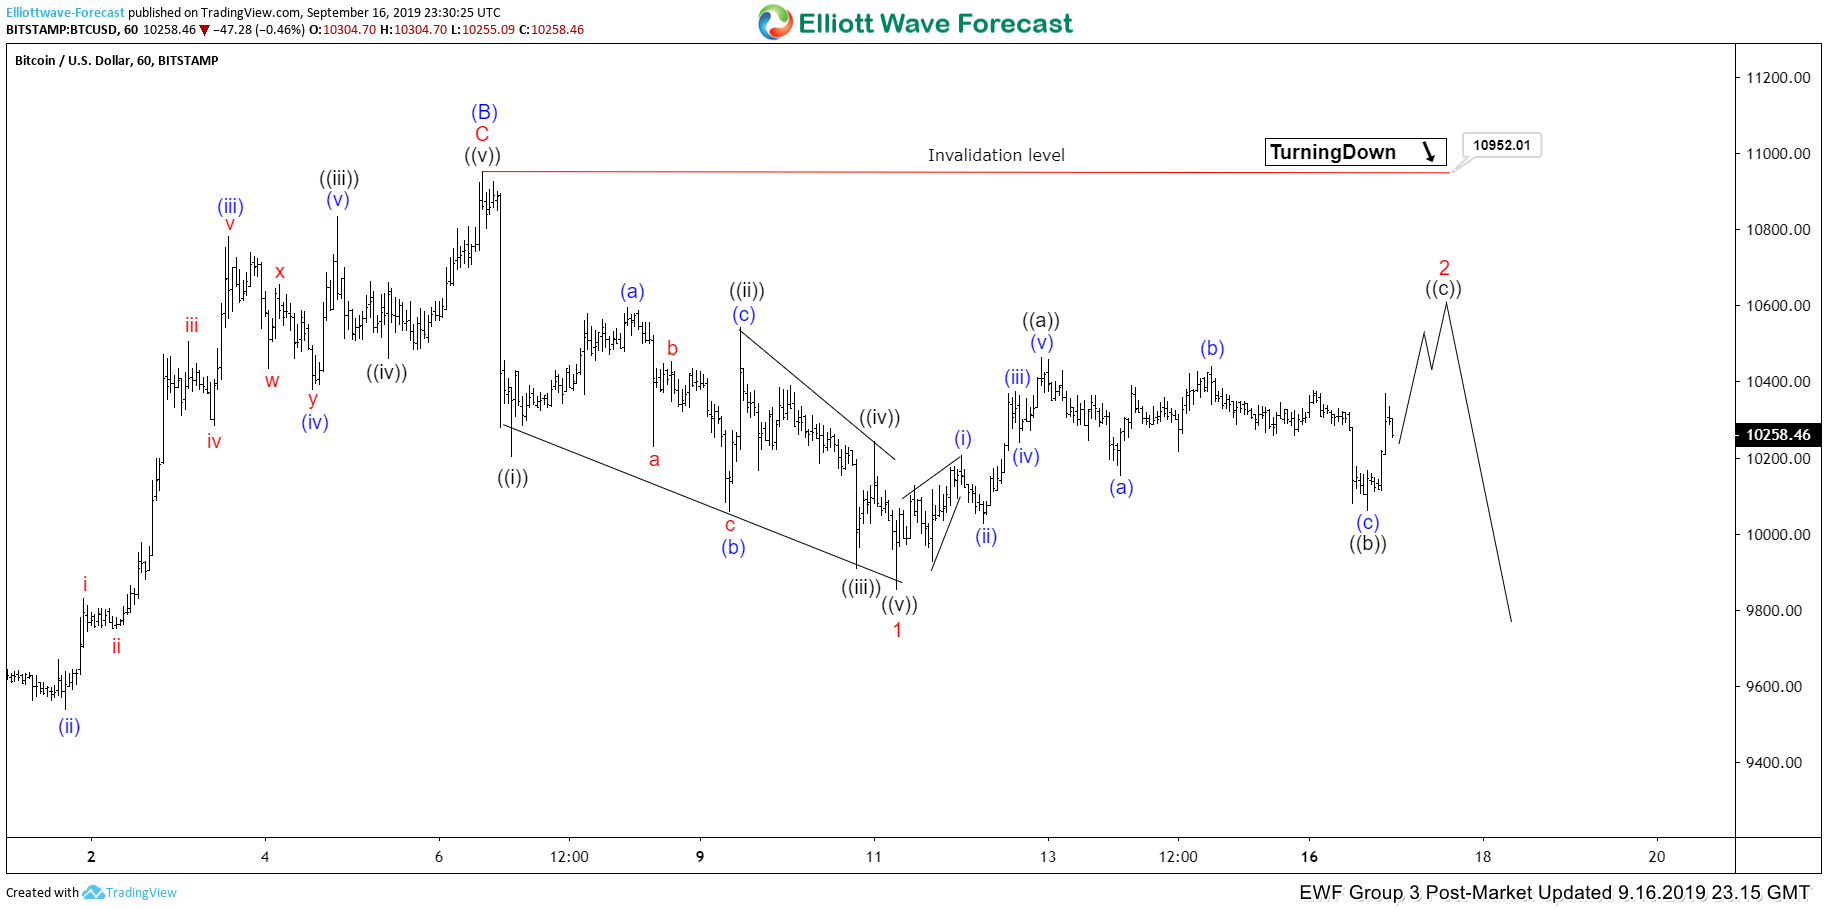 Elliott Wave View: Short Term Strength in Bitcoin